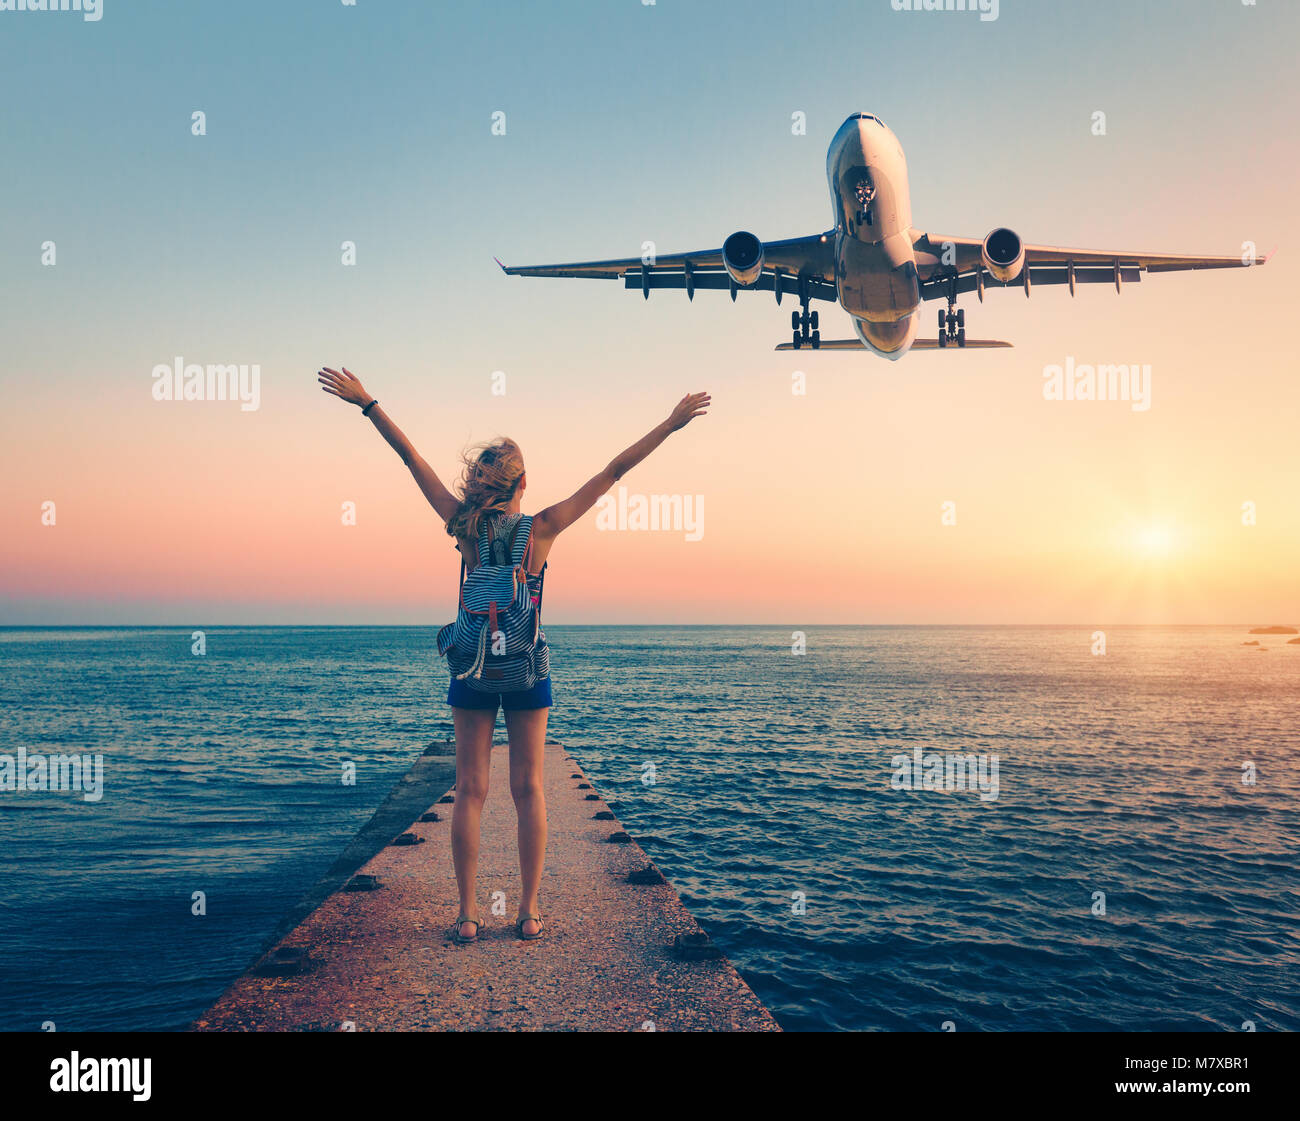 Airplane and woman at sunset. Summer landscape with girl standing on the sea pier with raised up arms and flying - Stock Image